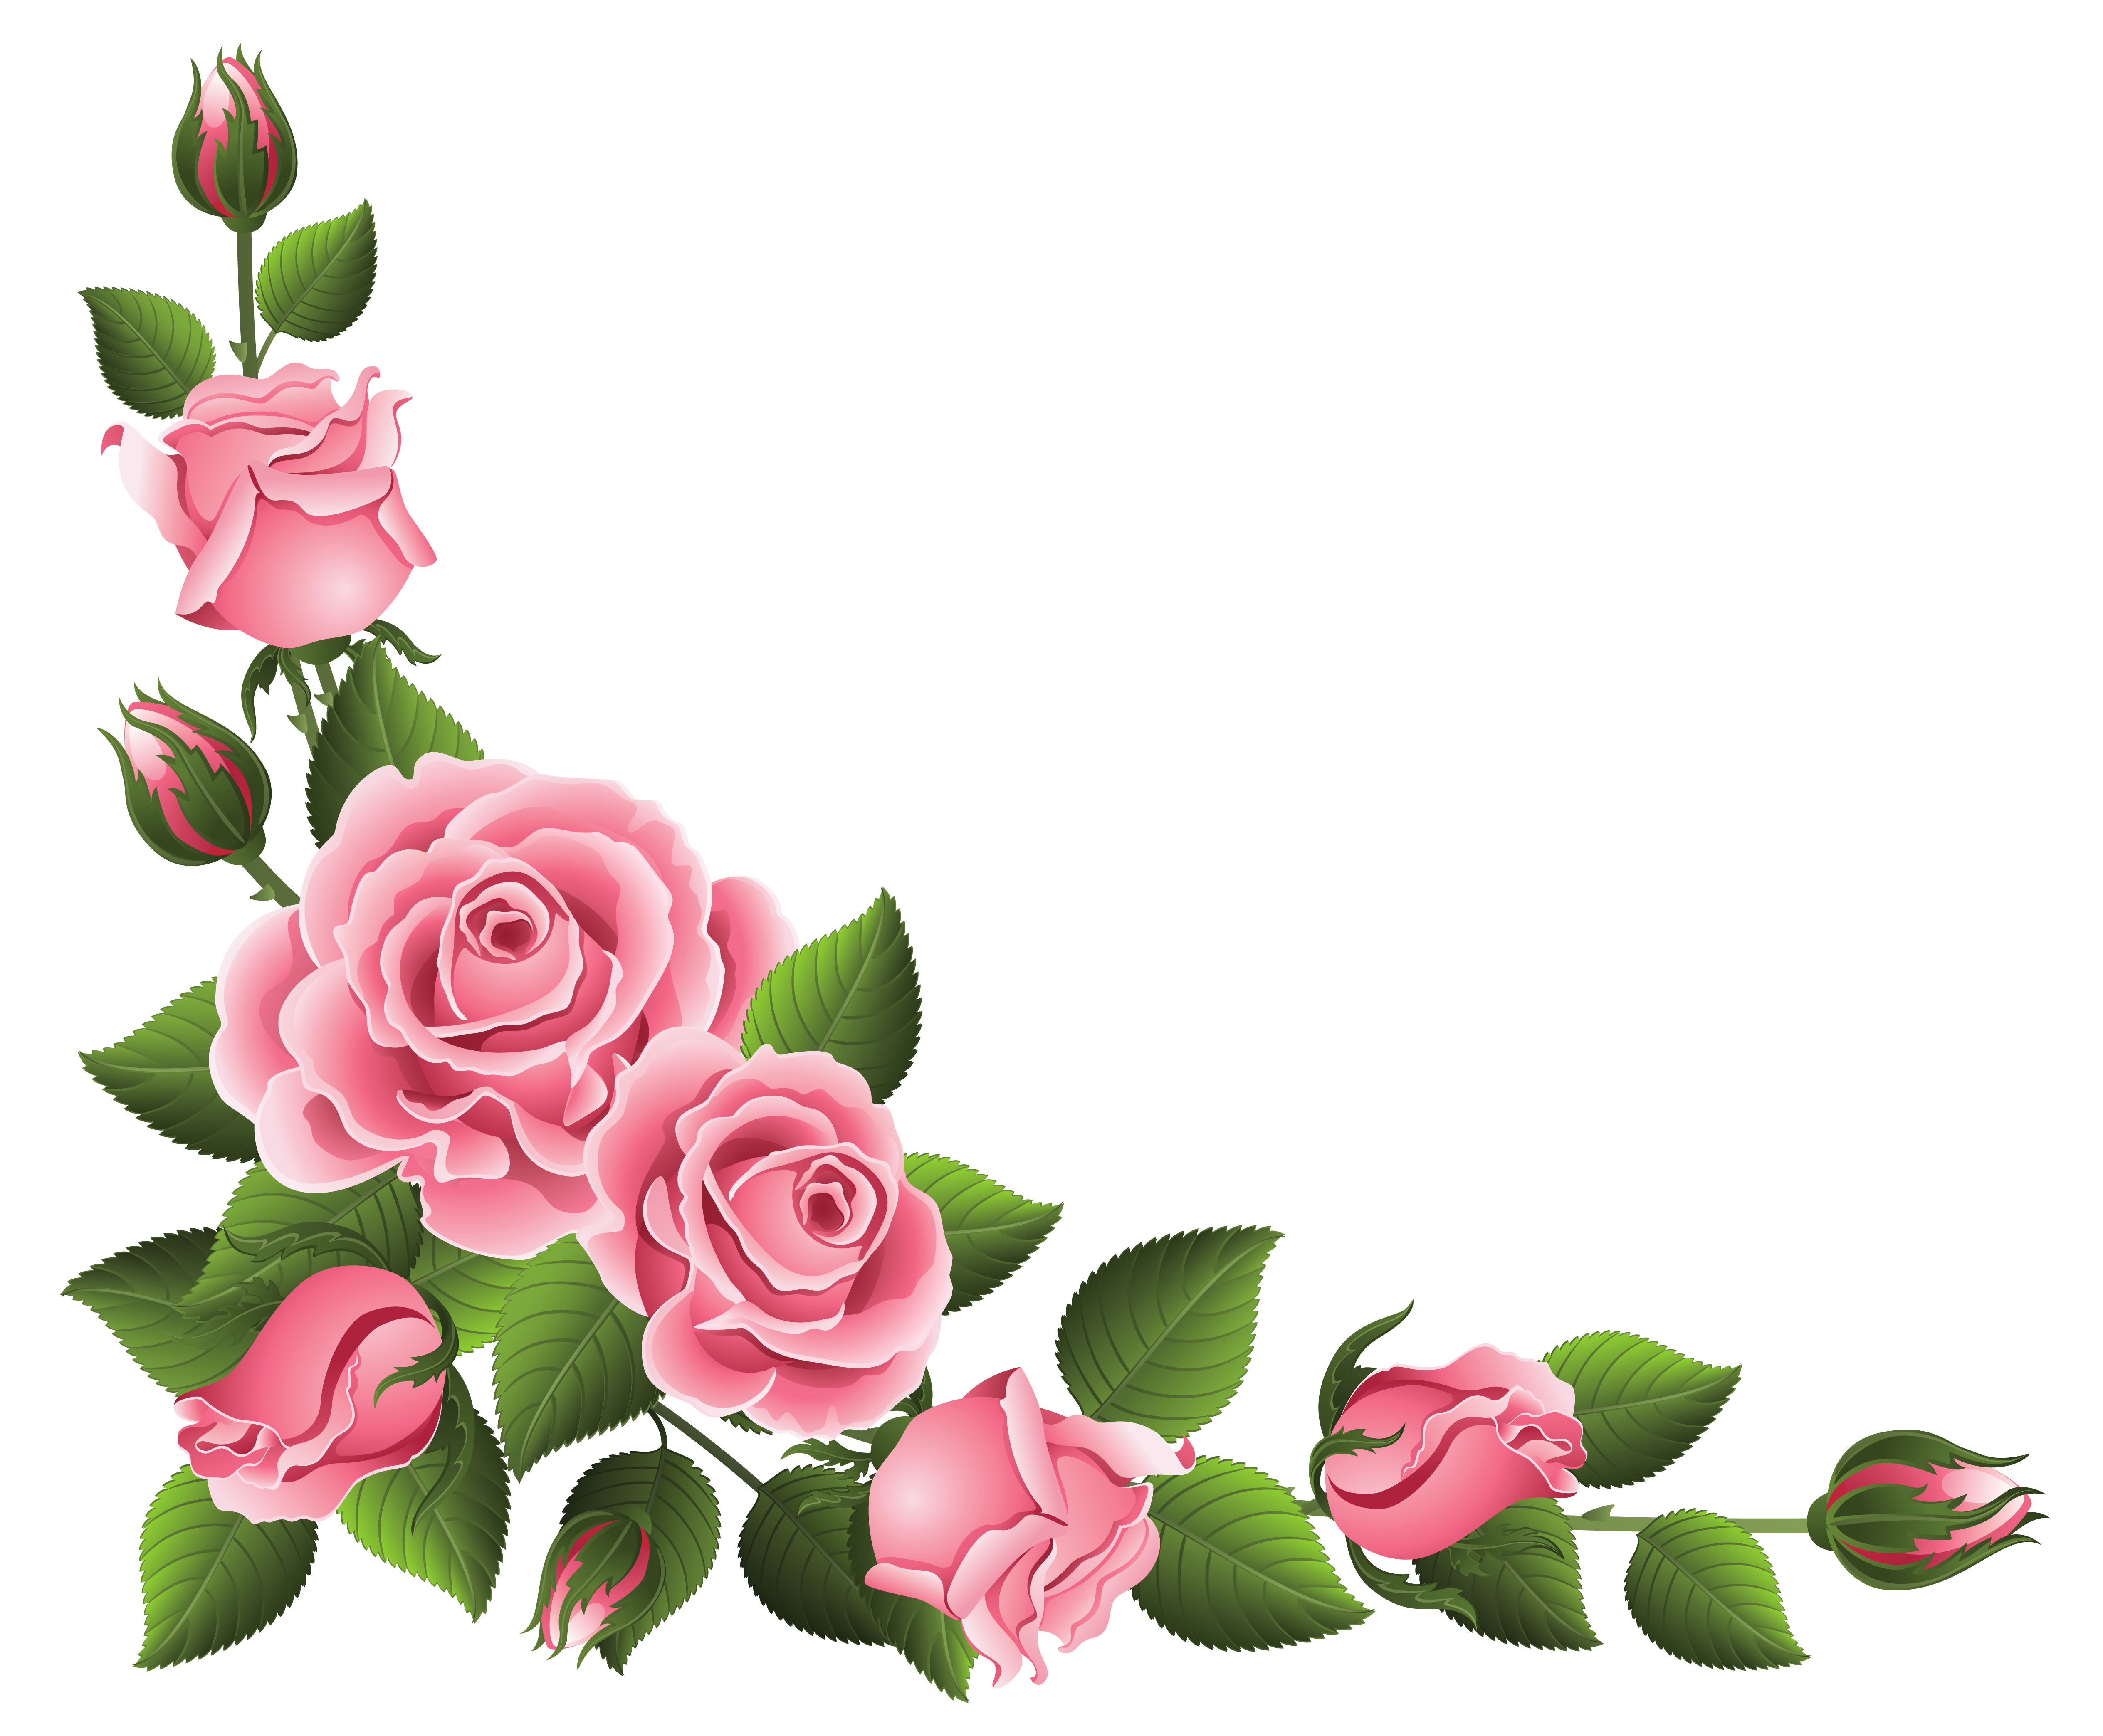 Flower corner border png. Decoration with roses clipart